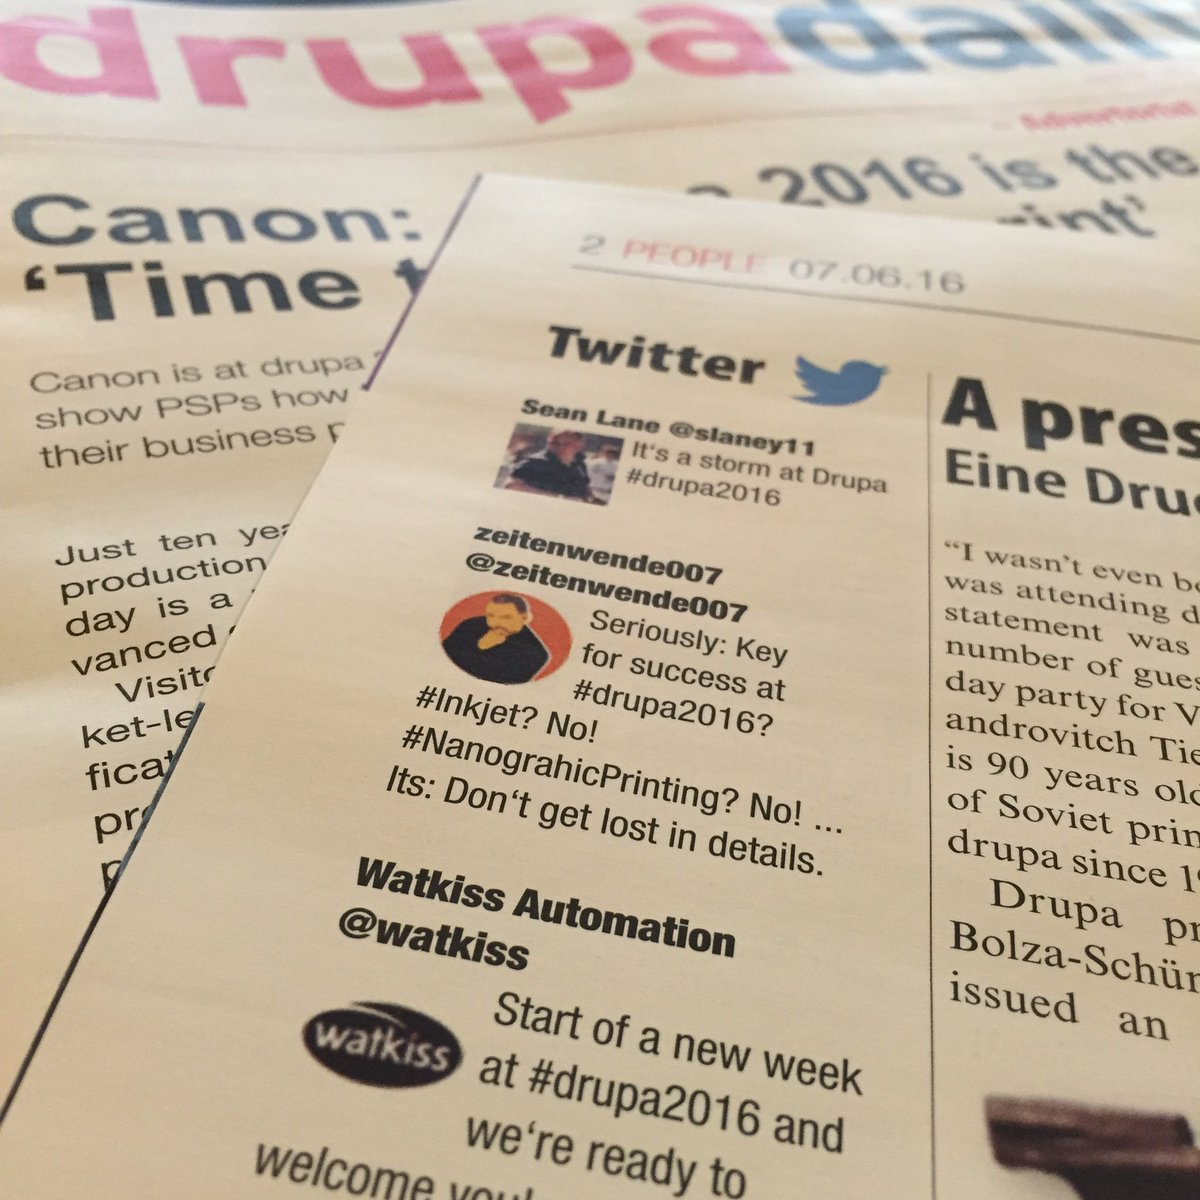 @cpunktb Merci! Good2know that #print is still alive and follows us on #Twitter. #print #drupa2018 #ValuePublishing https://t.co/NAexZb8zyN